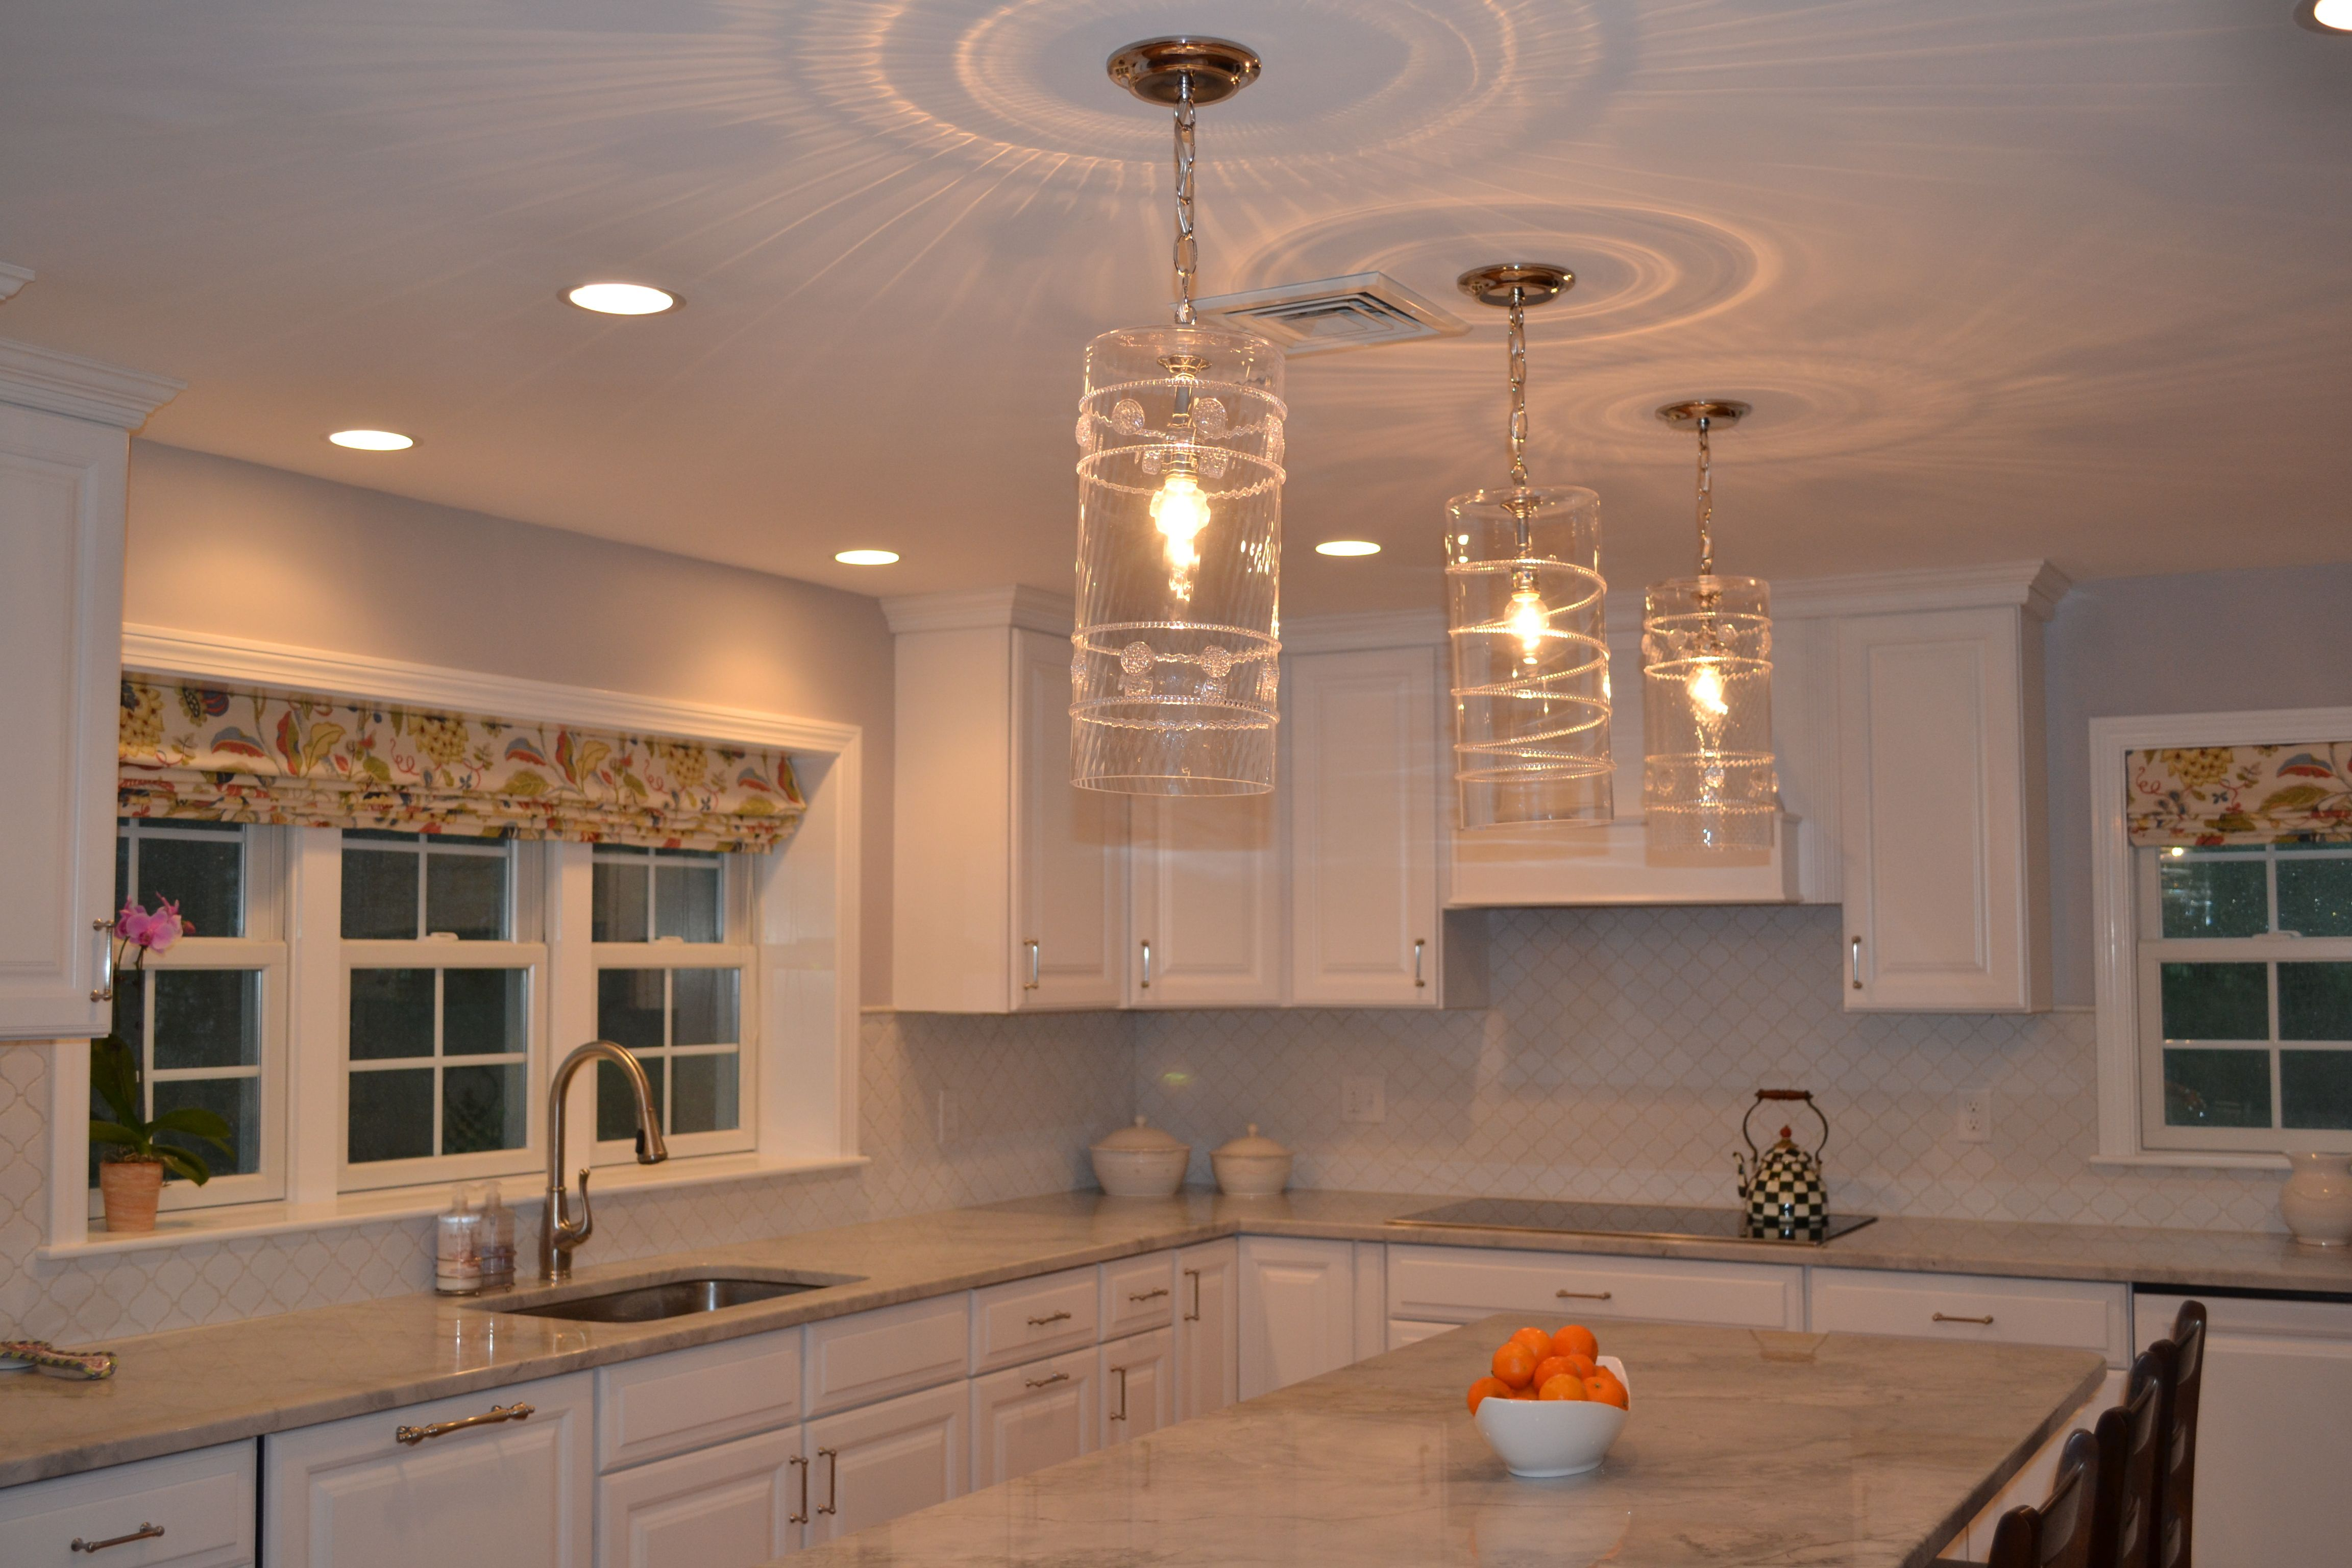 Lighting Fixtures Above Kitchen Island Juliska Pendant Lights Over Island Willow Cir Kitchen